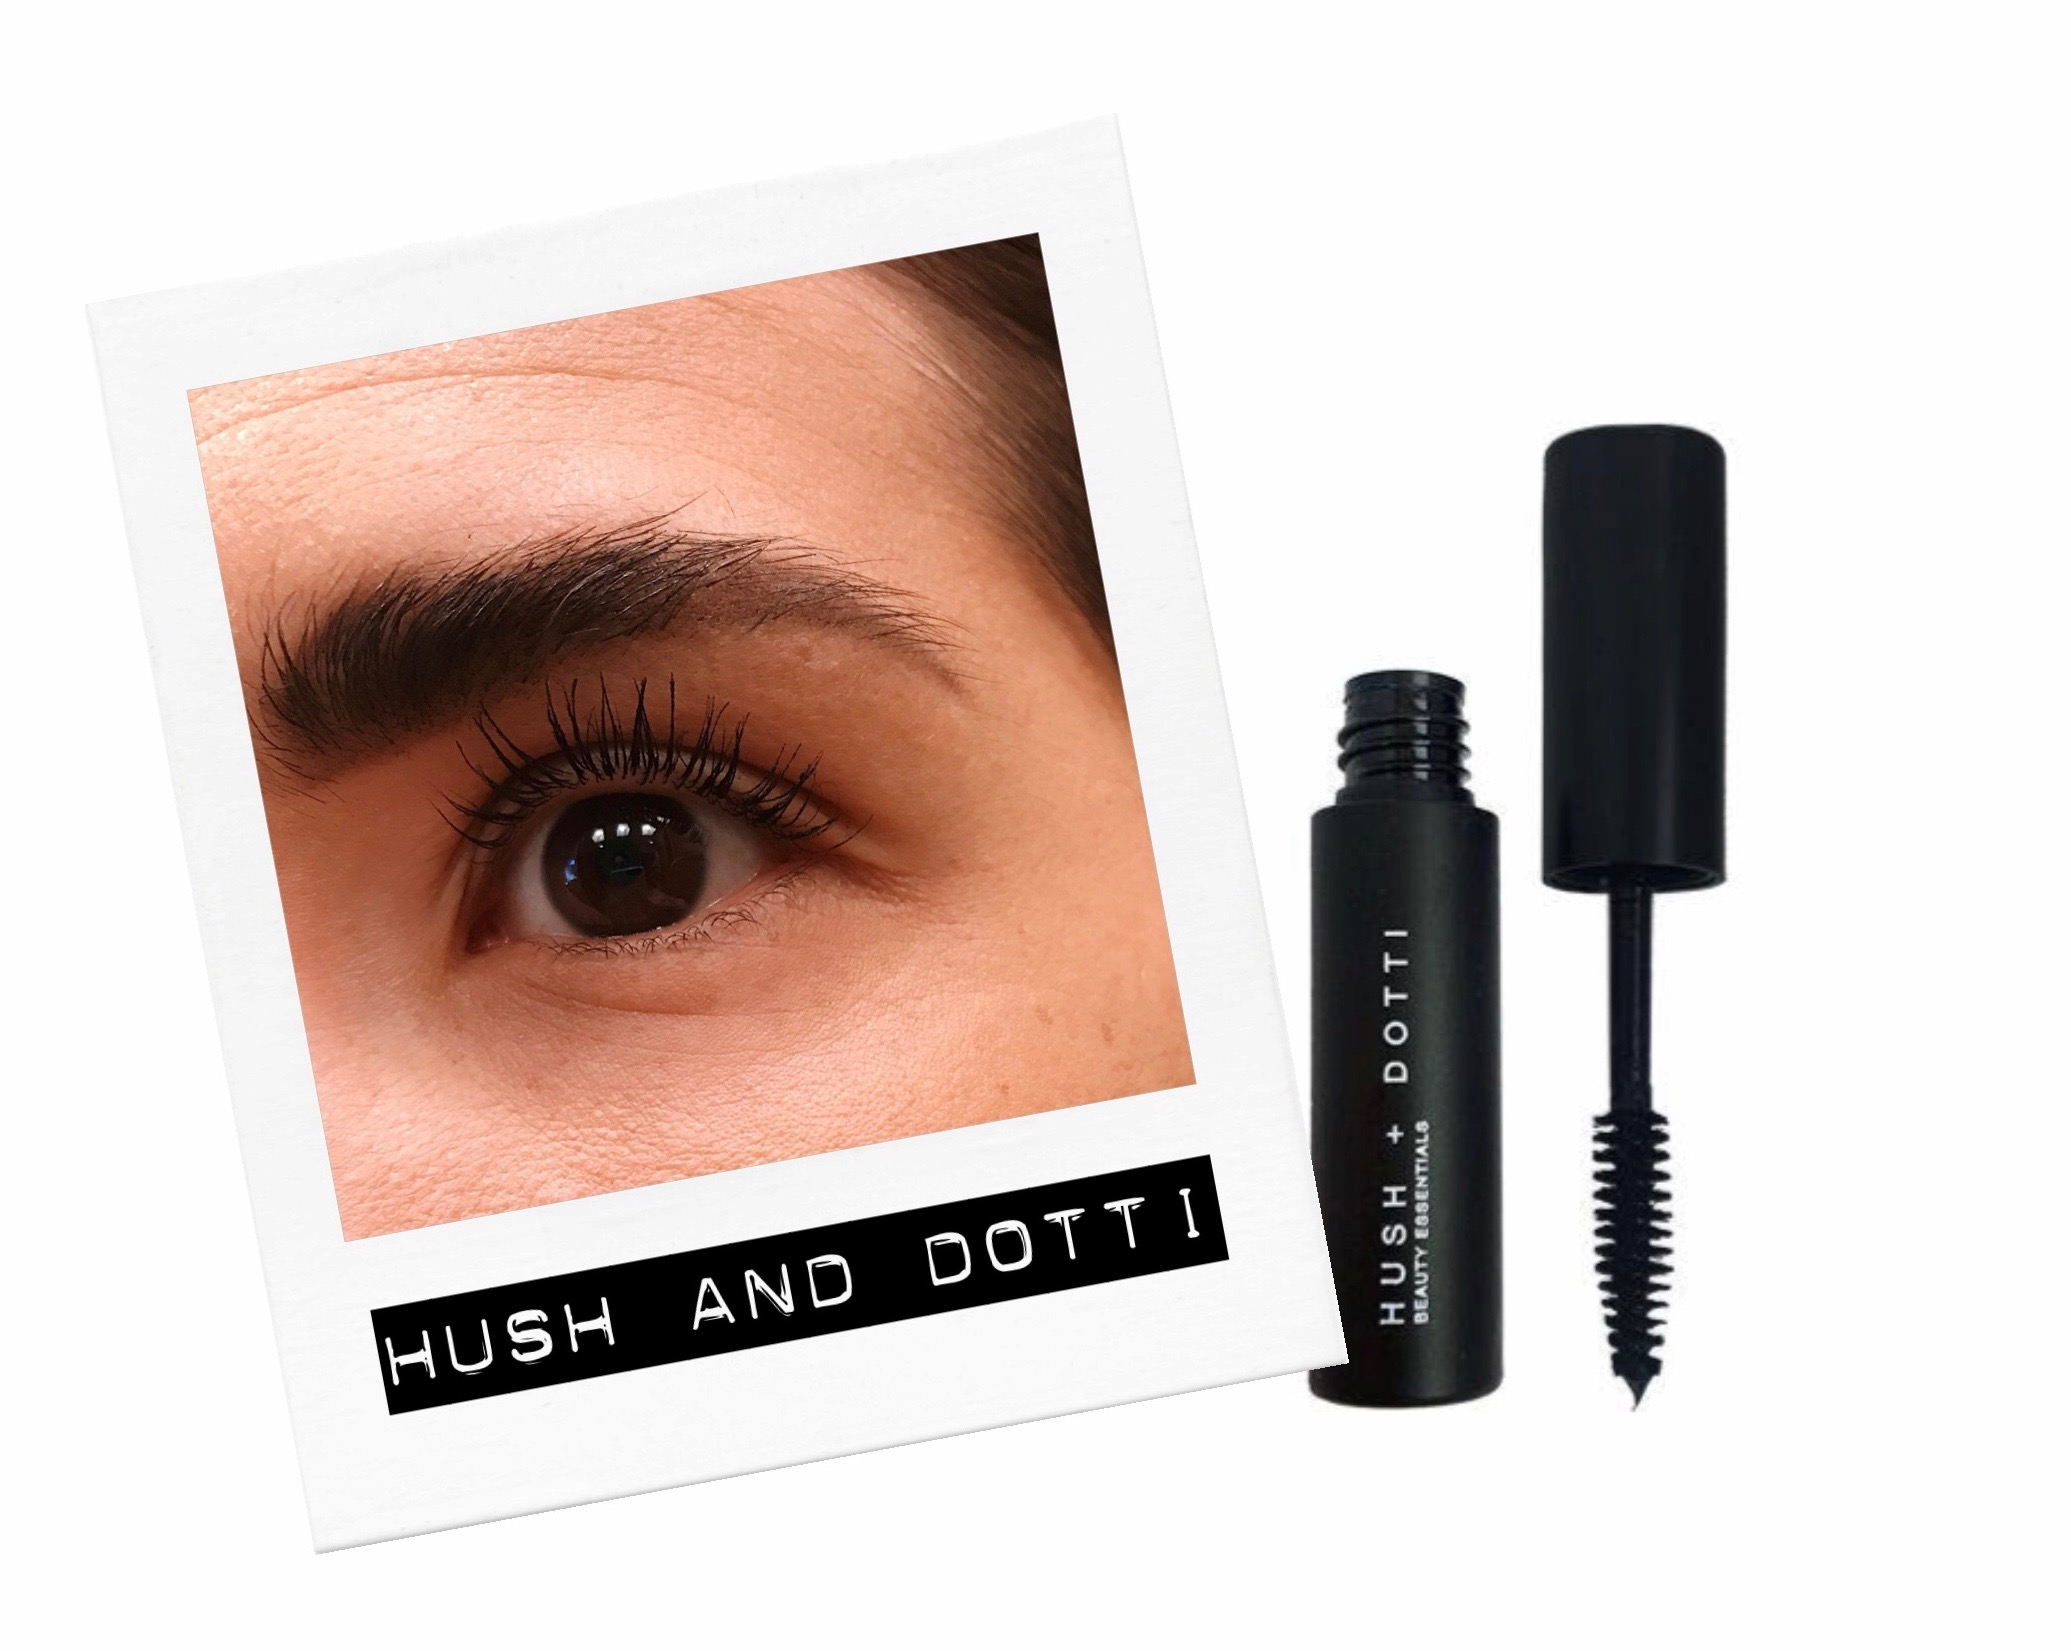 Green Beauty Mascara Guide - Hush & Dotti | janny: organically.